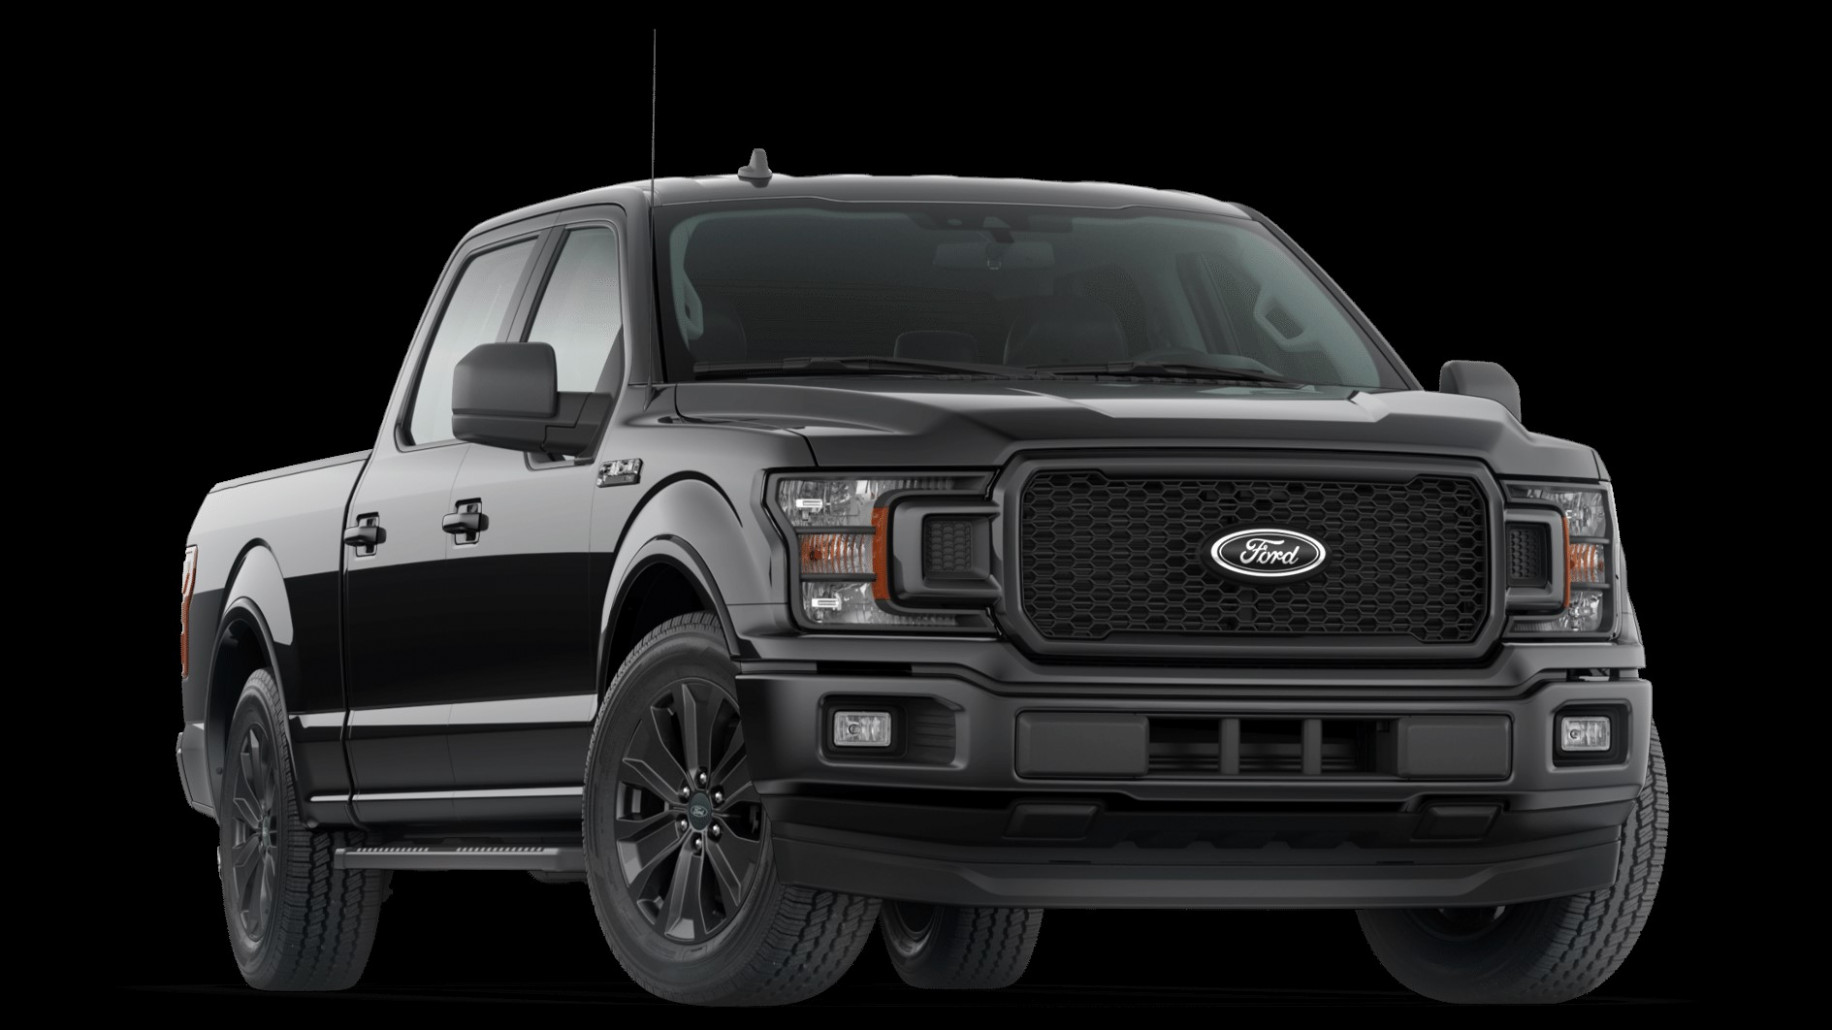 Meet The 6 Ford F-6 XLT Black Appearance Package: - Next F6